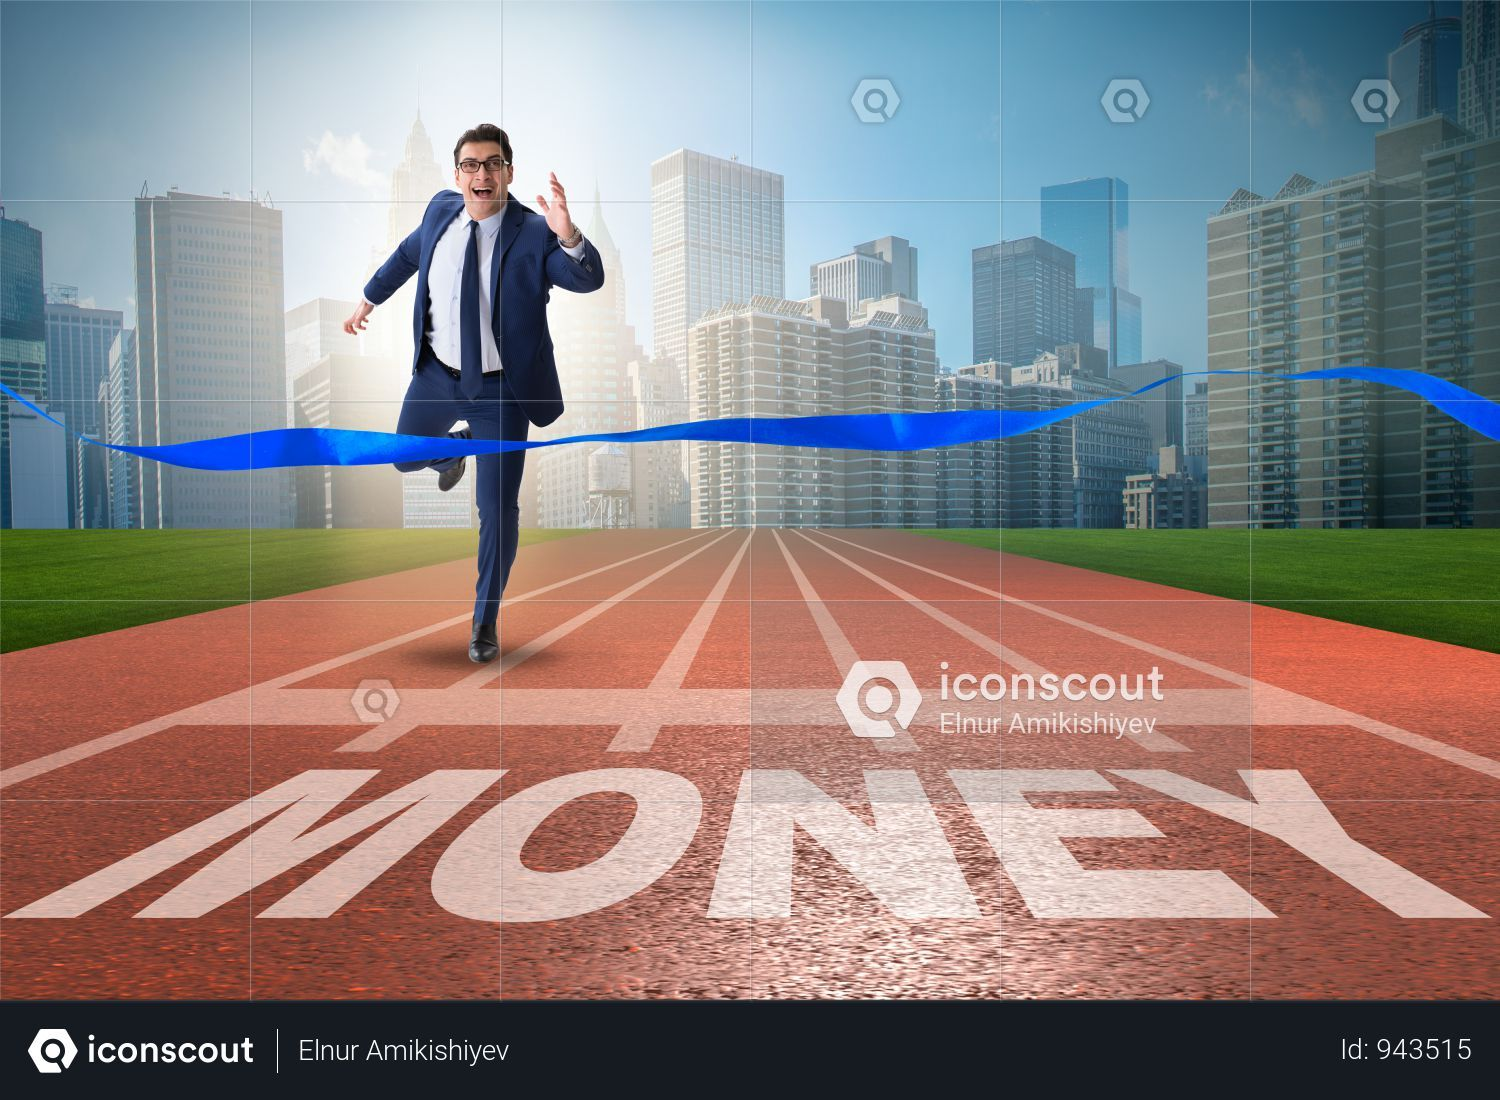 Premium Businessman Running Towards Money On Track Photo Download In Png Jpg Format Business Man Business Photos Running